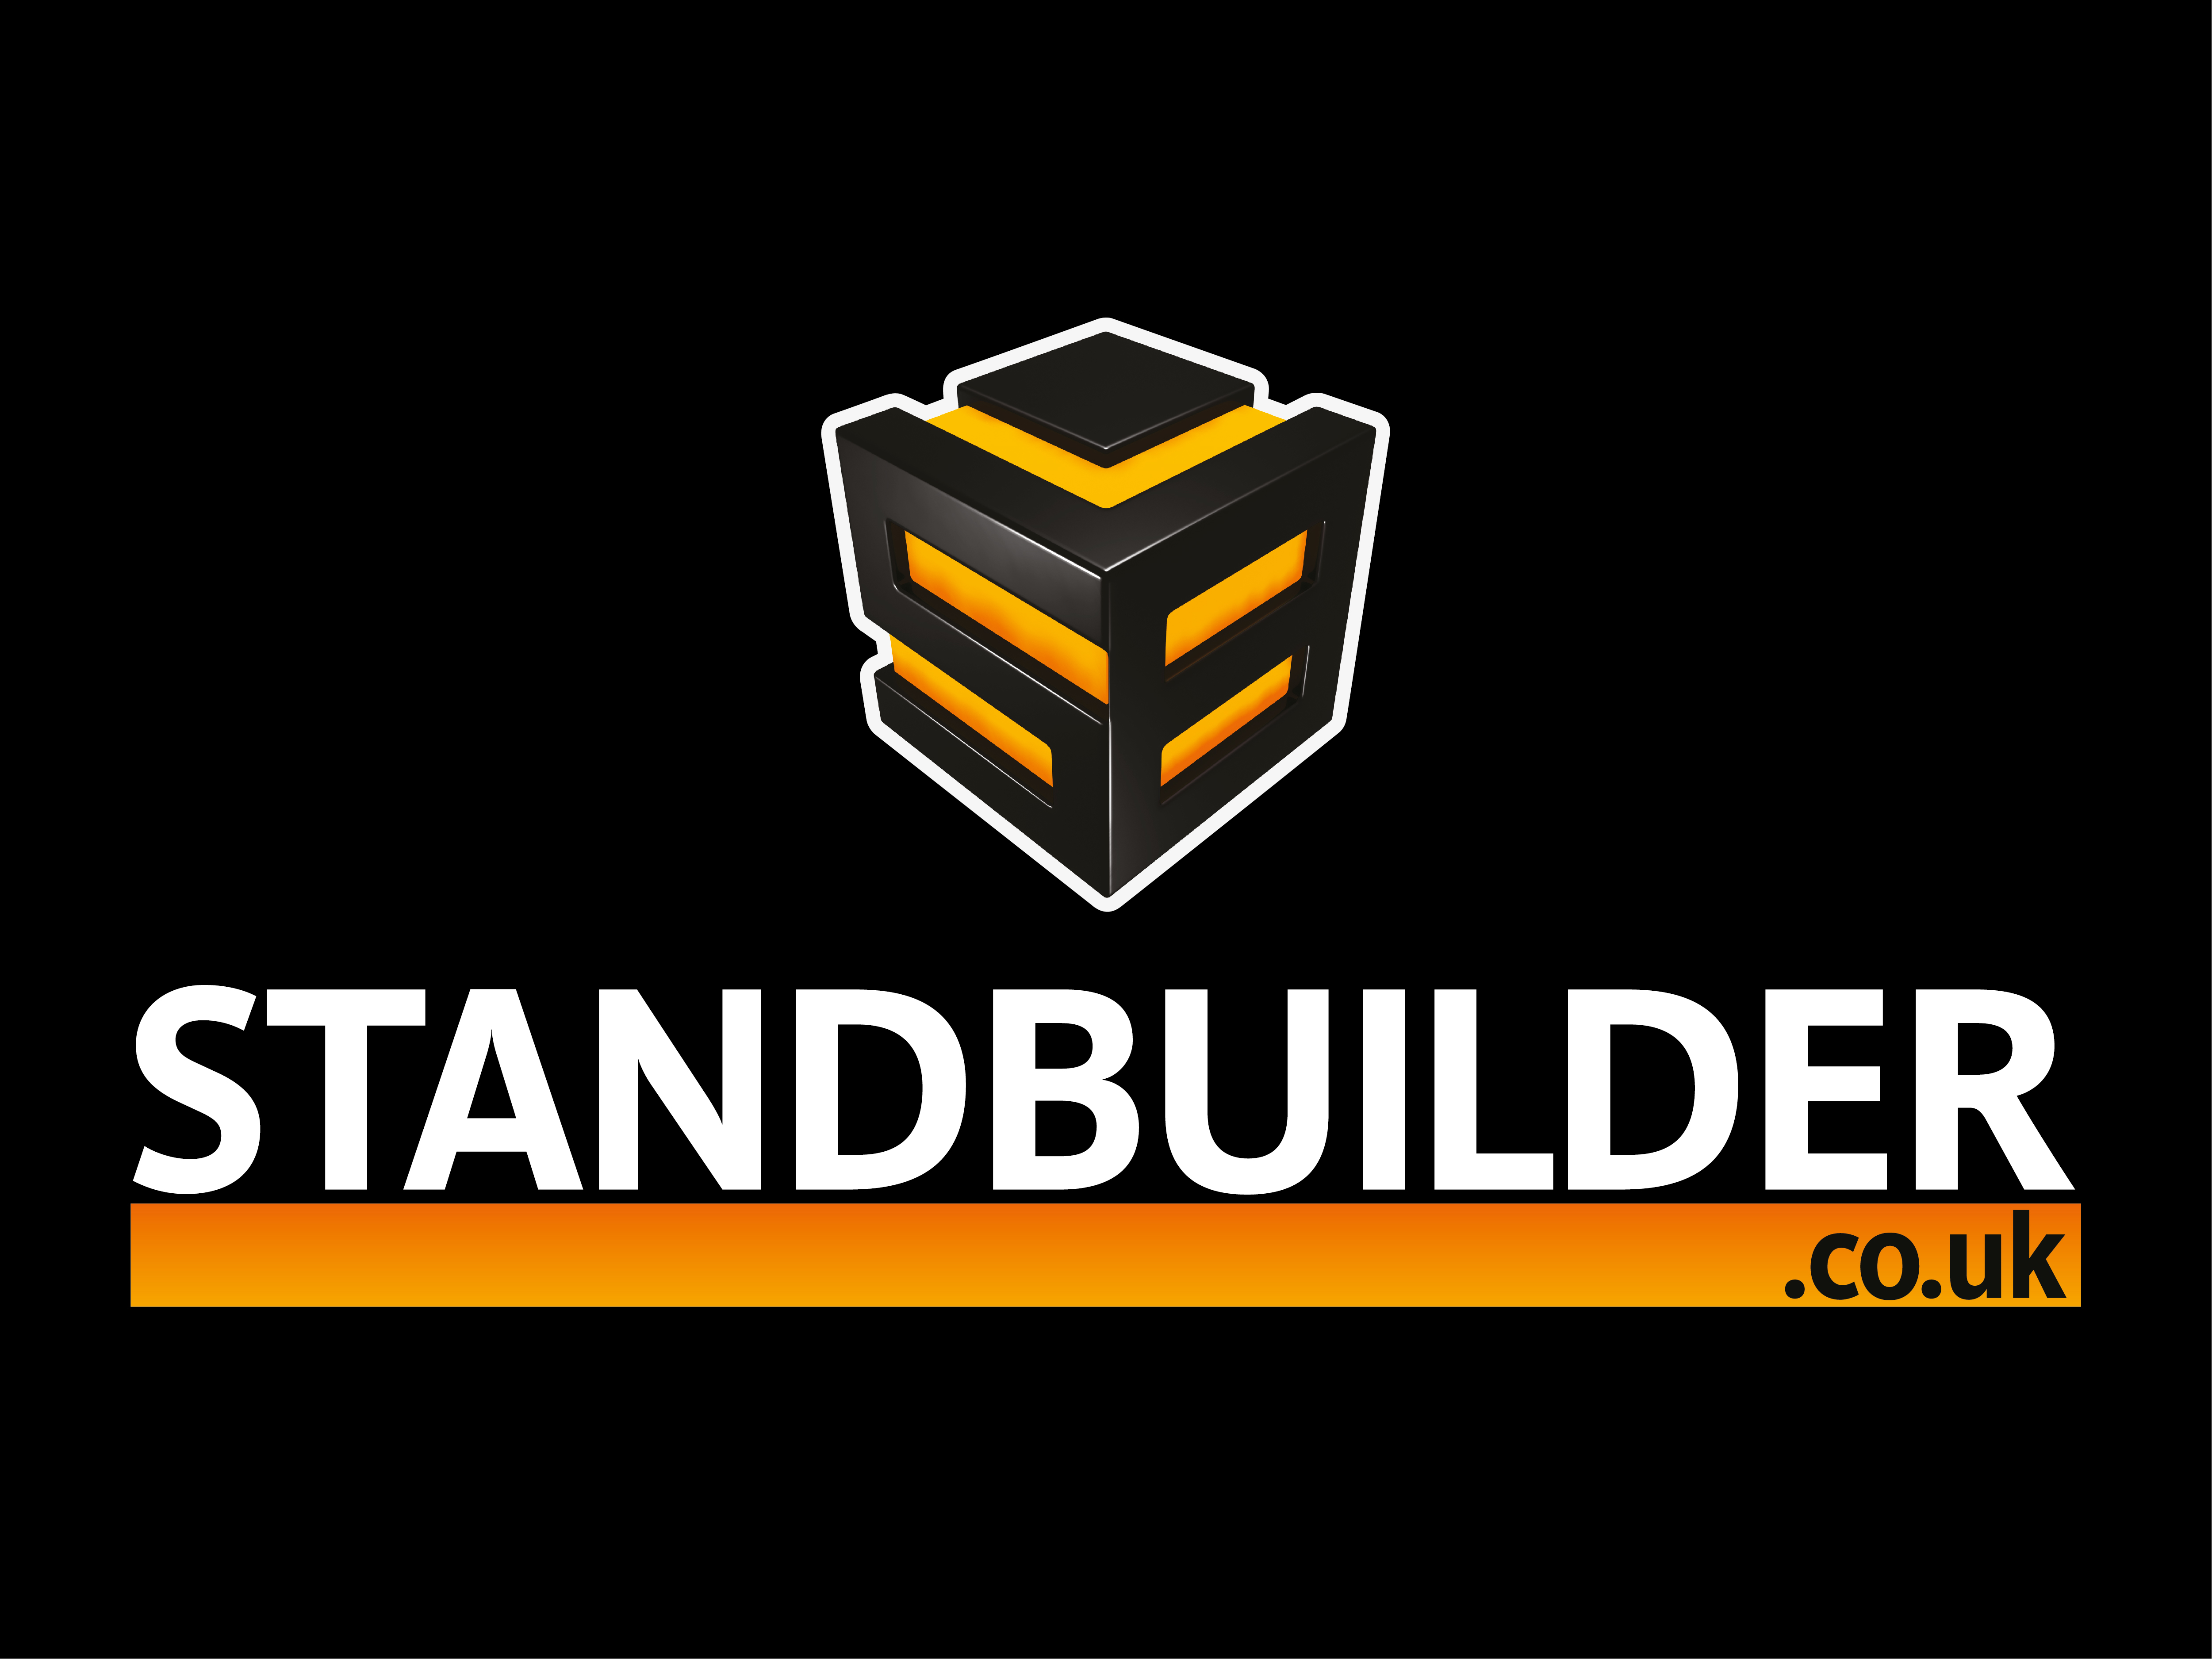 Standbuilder.co.uk